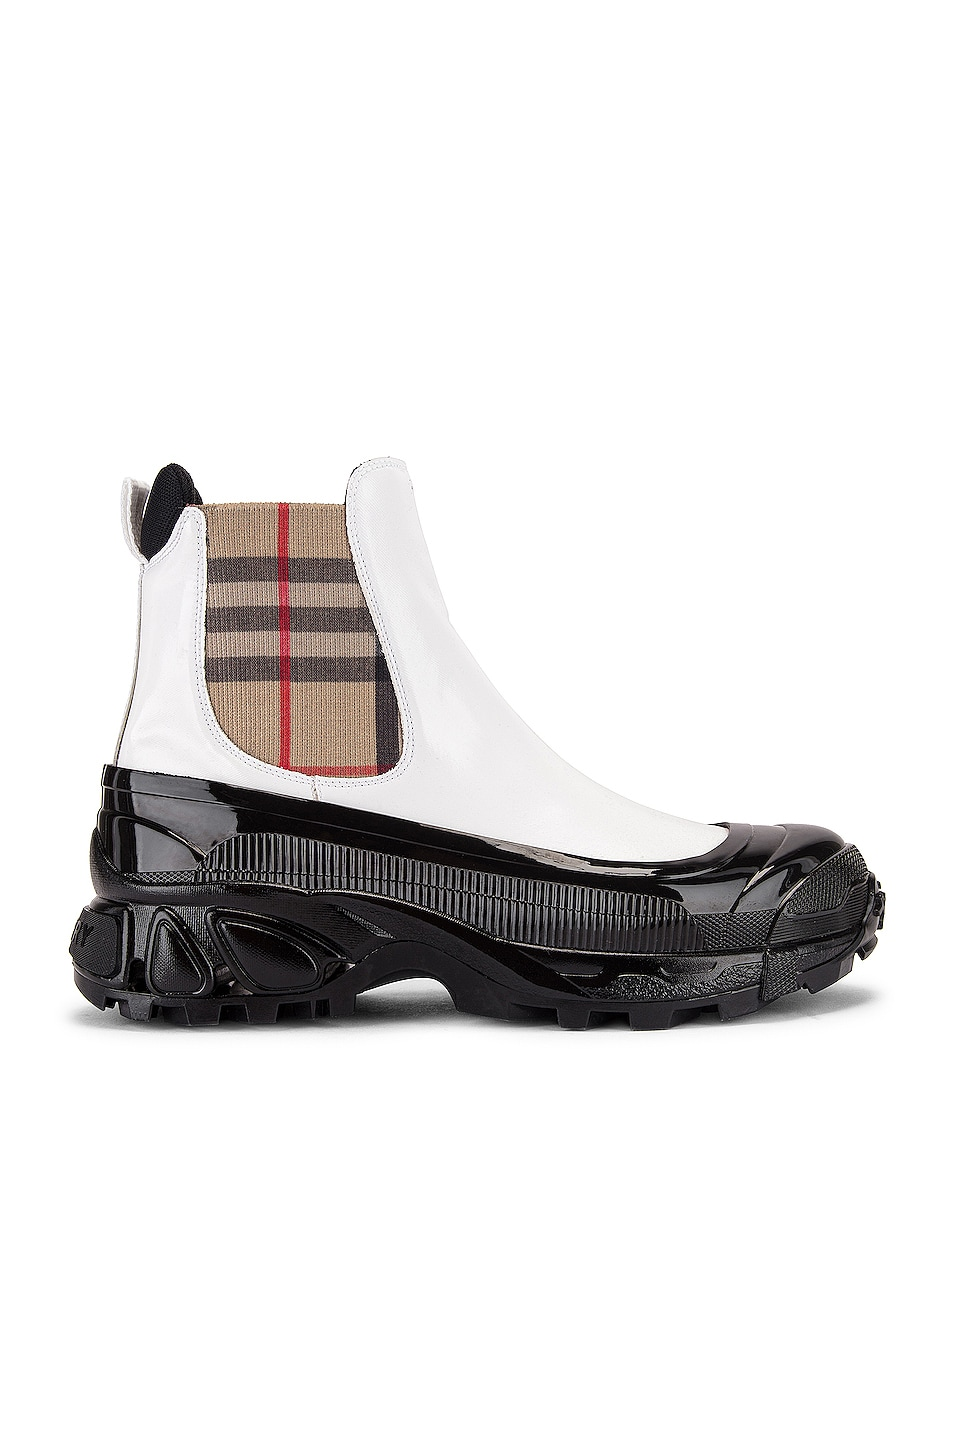 burberry shoes afterpay